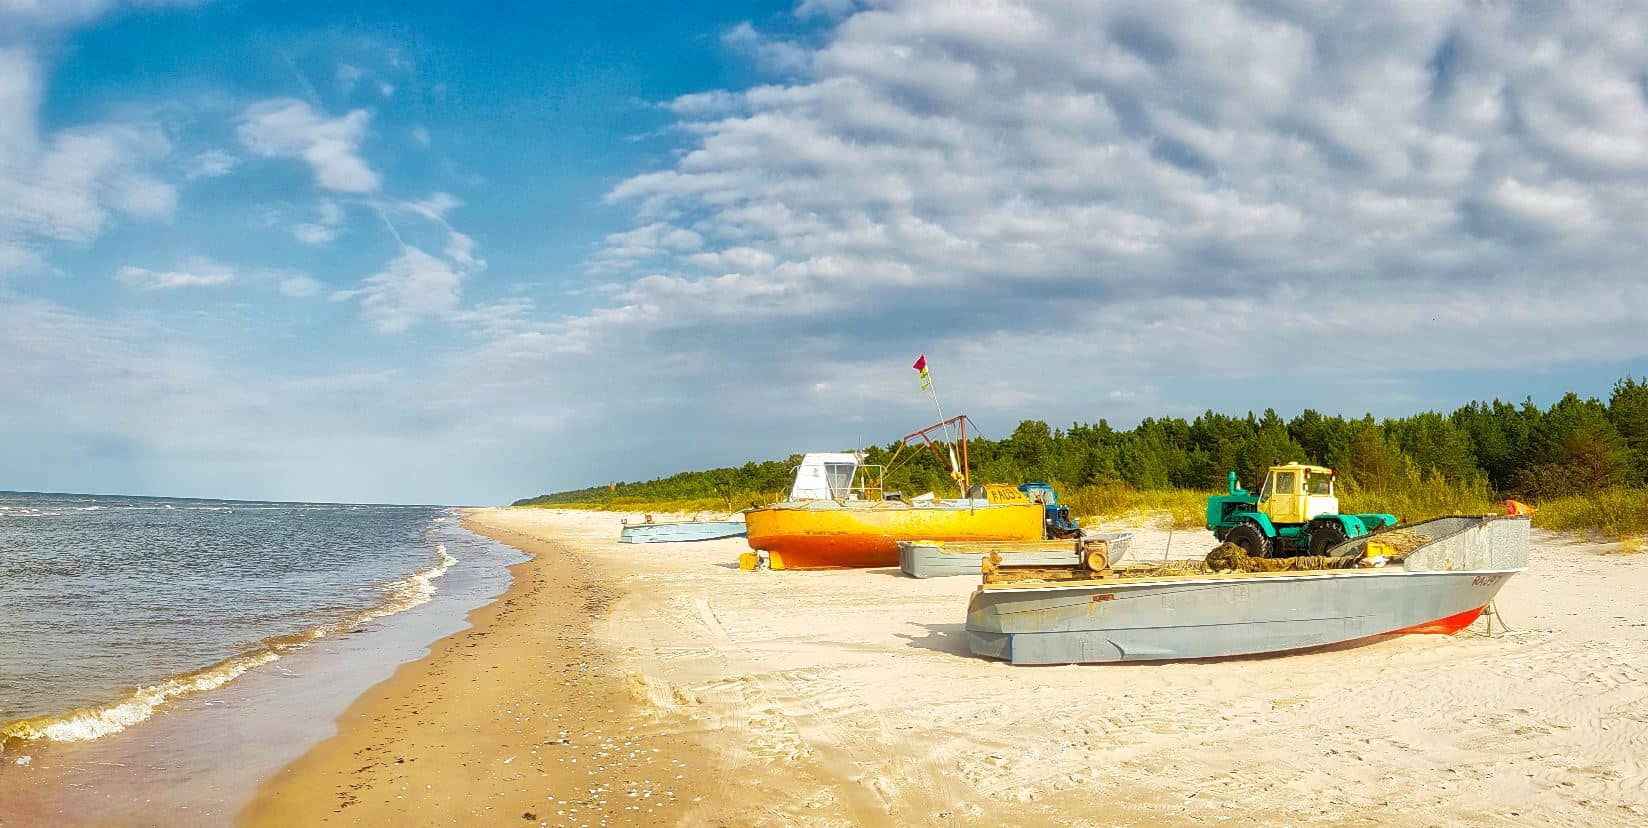 Remote fishermen village in the Western coast of Latvia